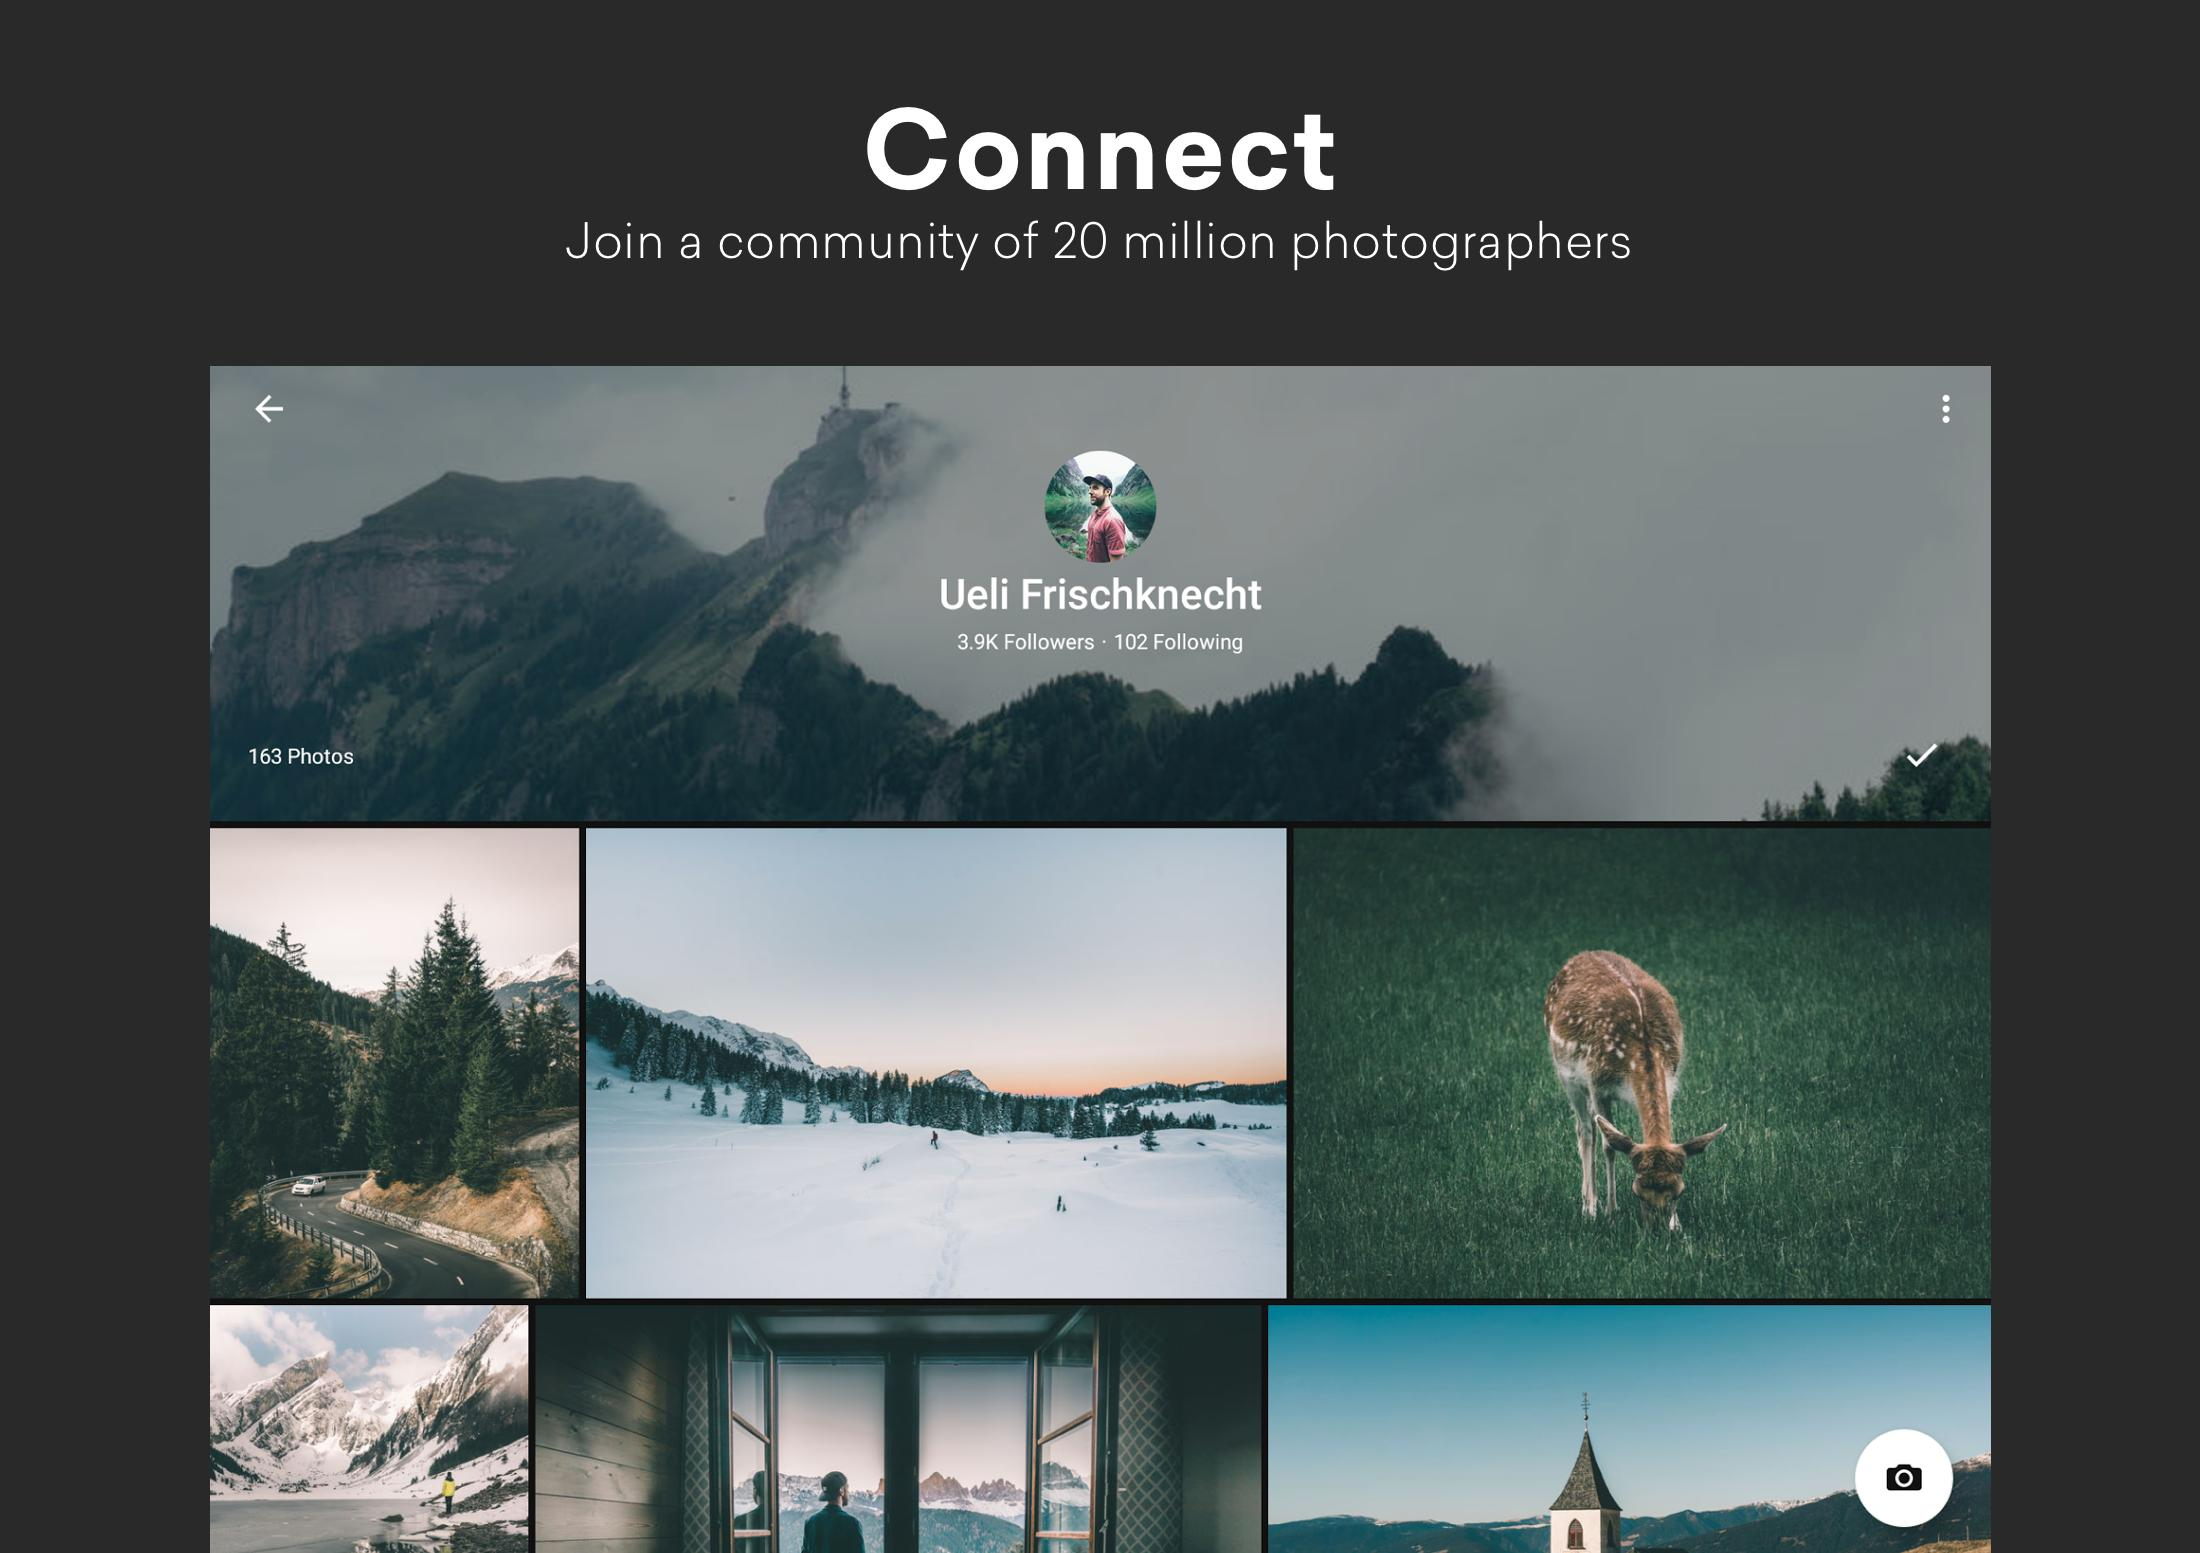 EyeEm Free Photo App For Sharing & Selling Images 8.1 Screenshot 10